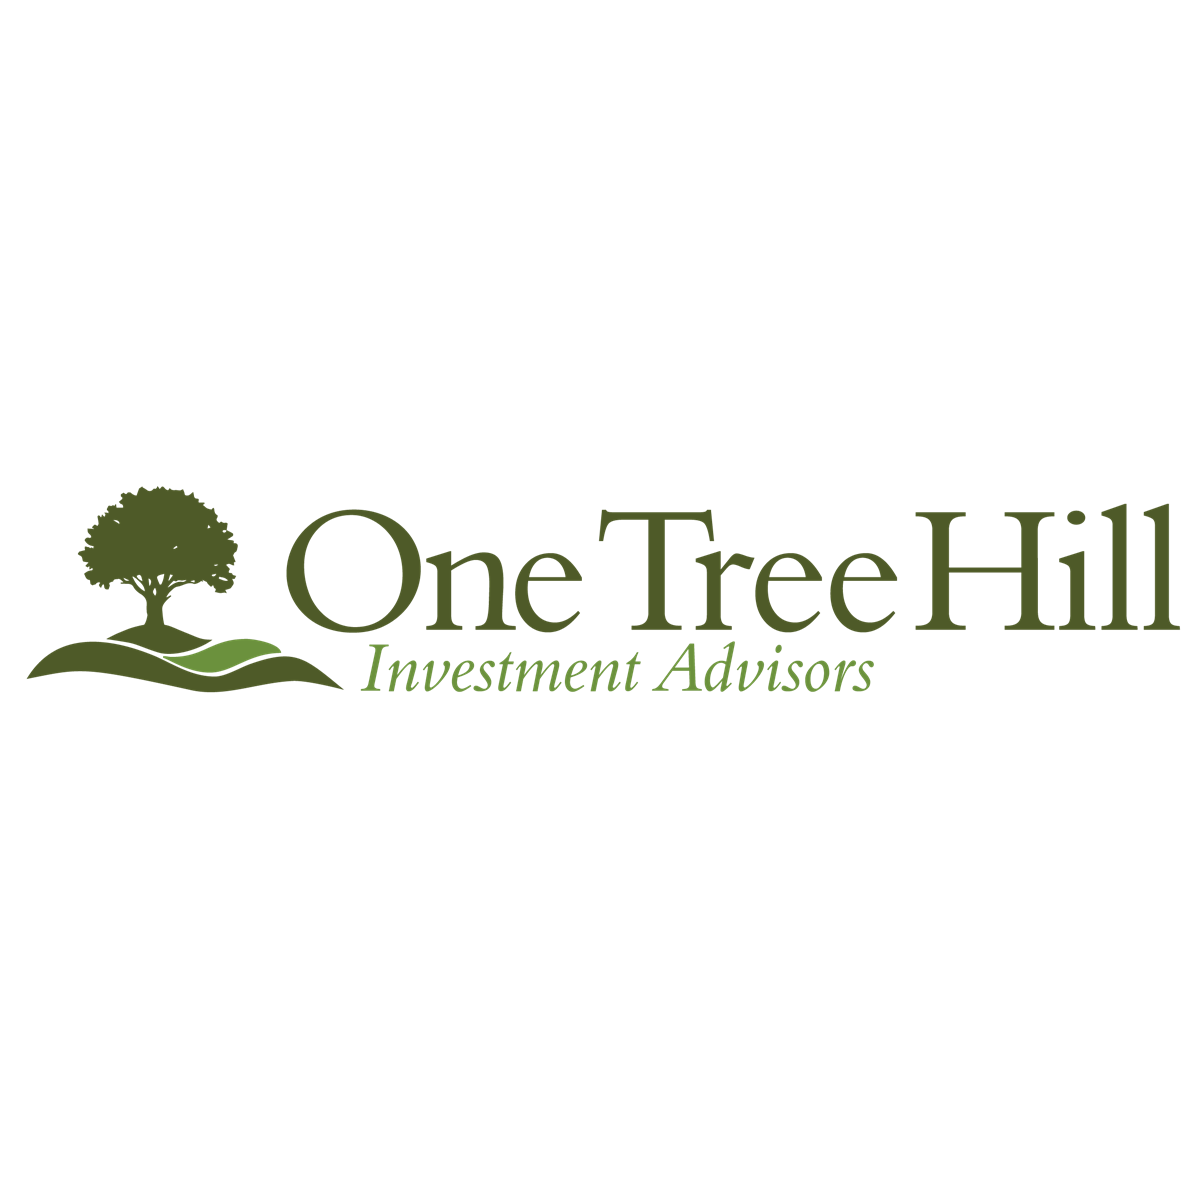 One Tree Hill Investment Advisors